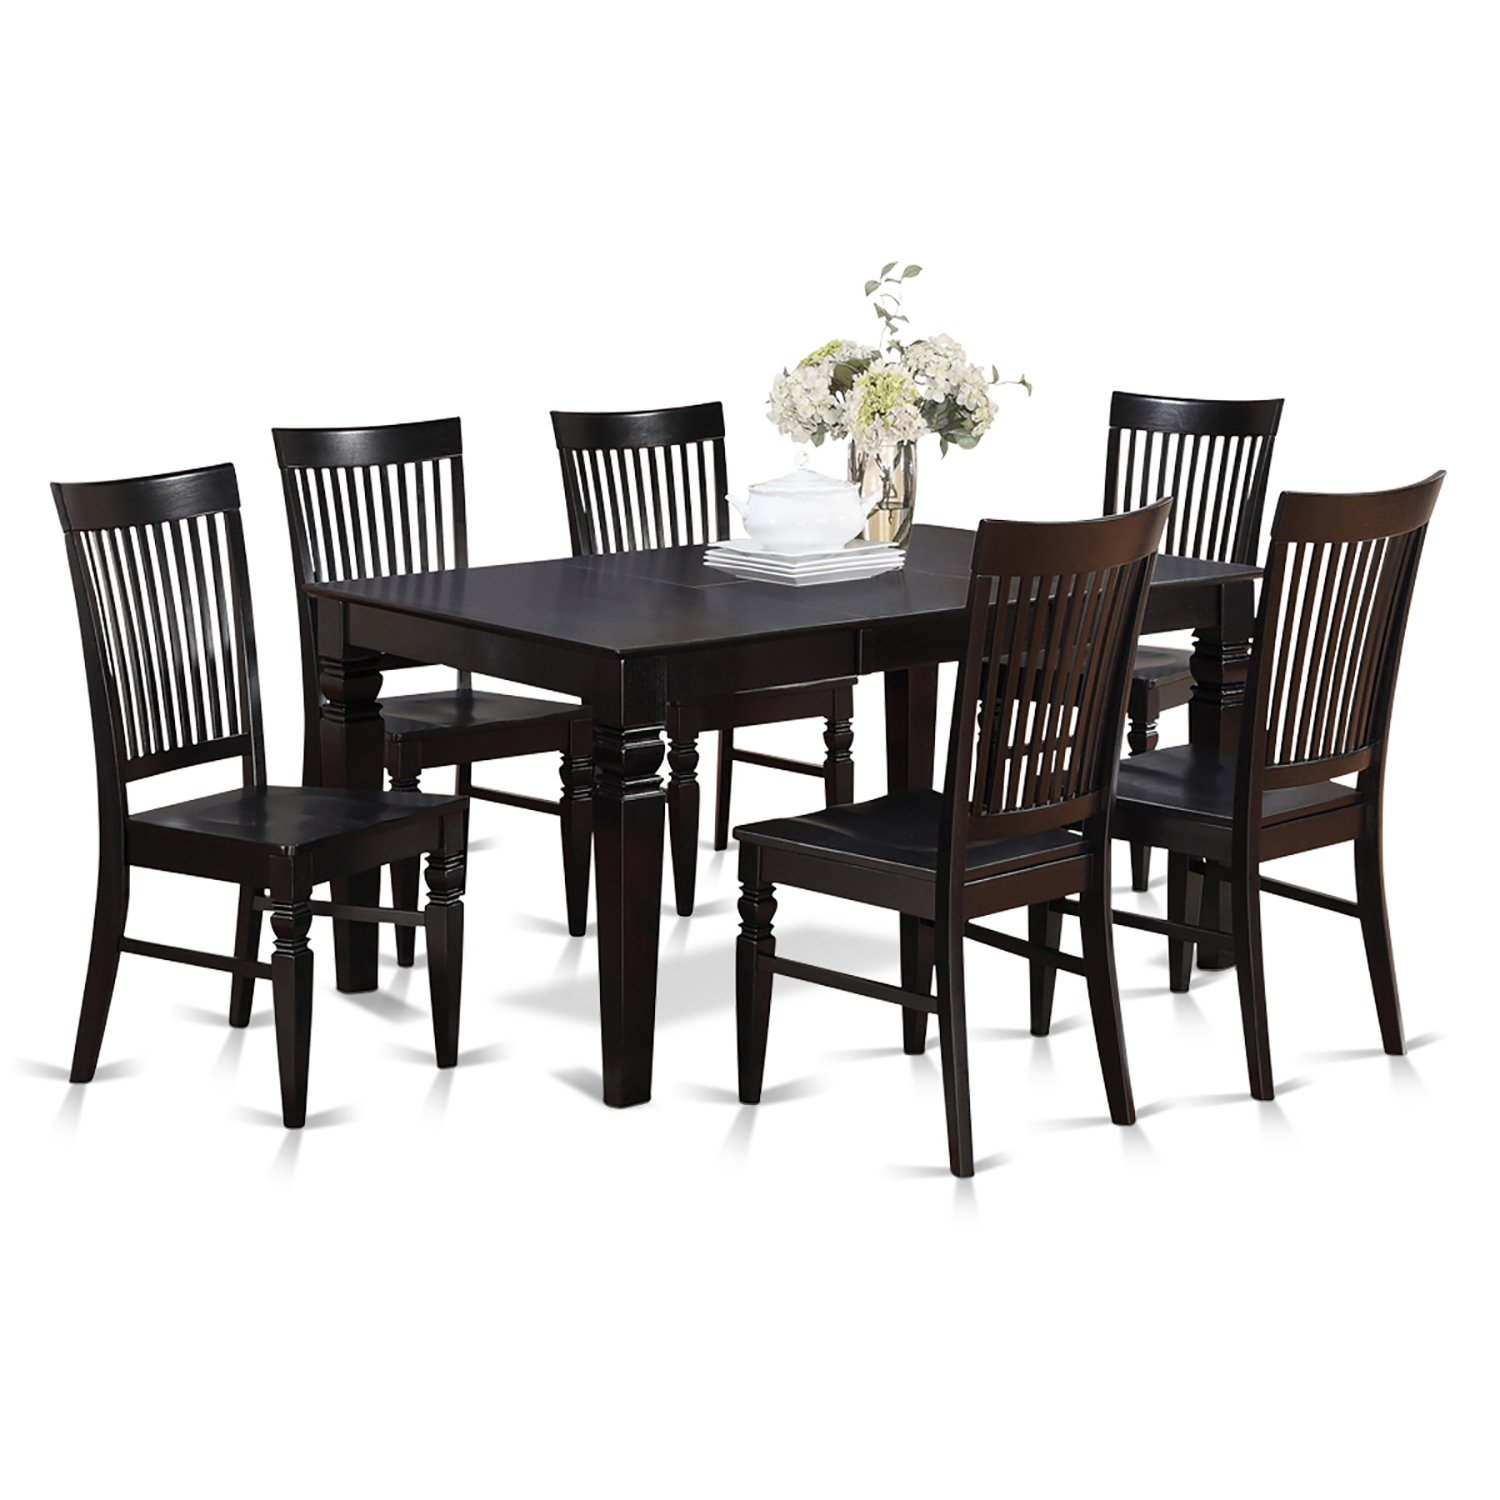 Black dining table and chairs - Amazon Com East West Furniture West7 Whi W 7 Piece Dining Table Set Kitchen Dining